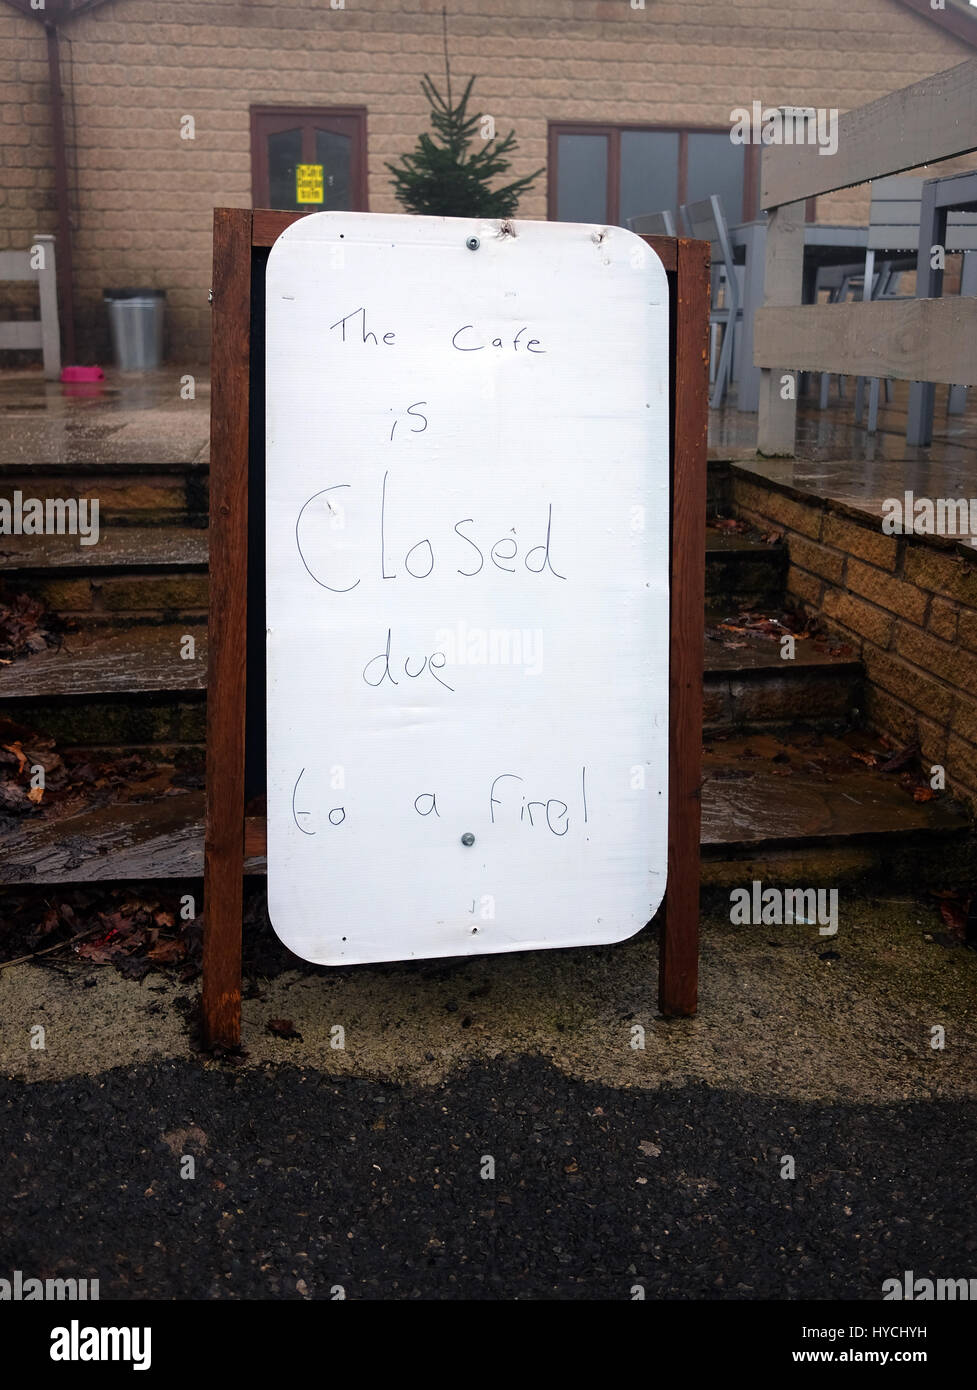 1oth December 2016 - Cafe closed due to fire hand written sign. - Stock Image